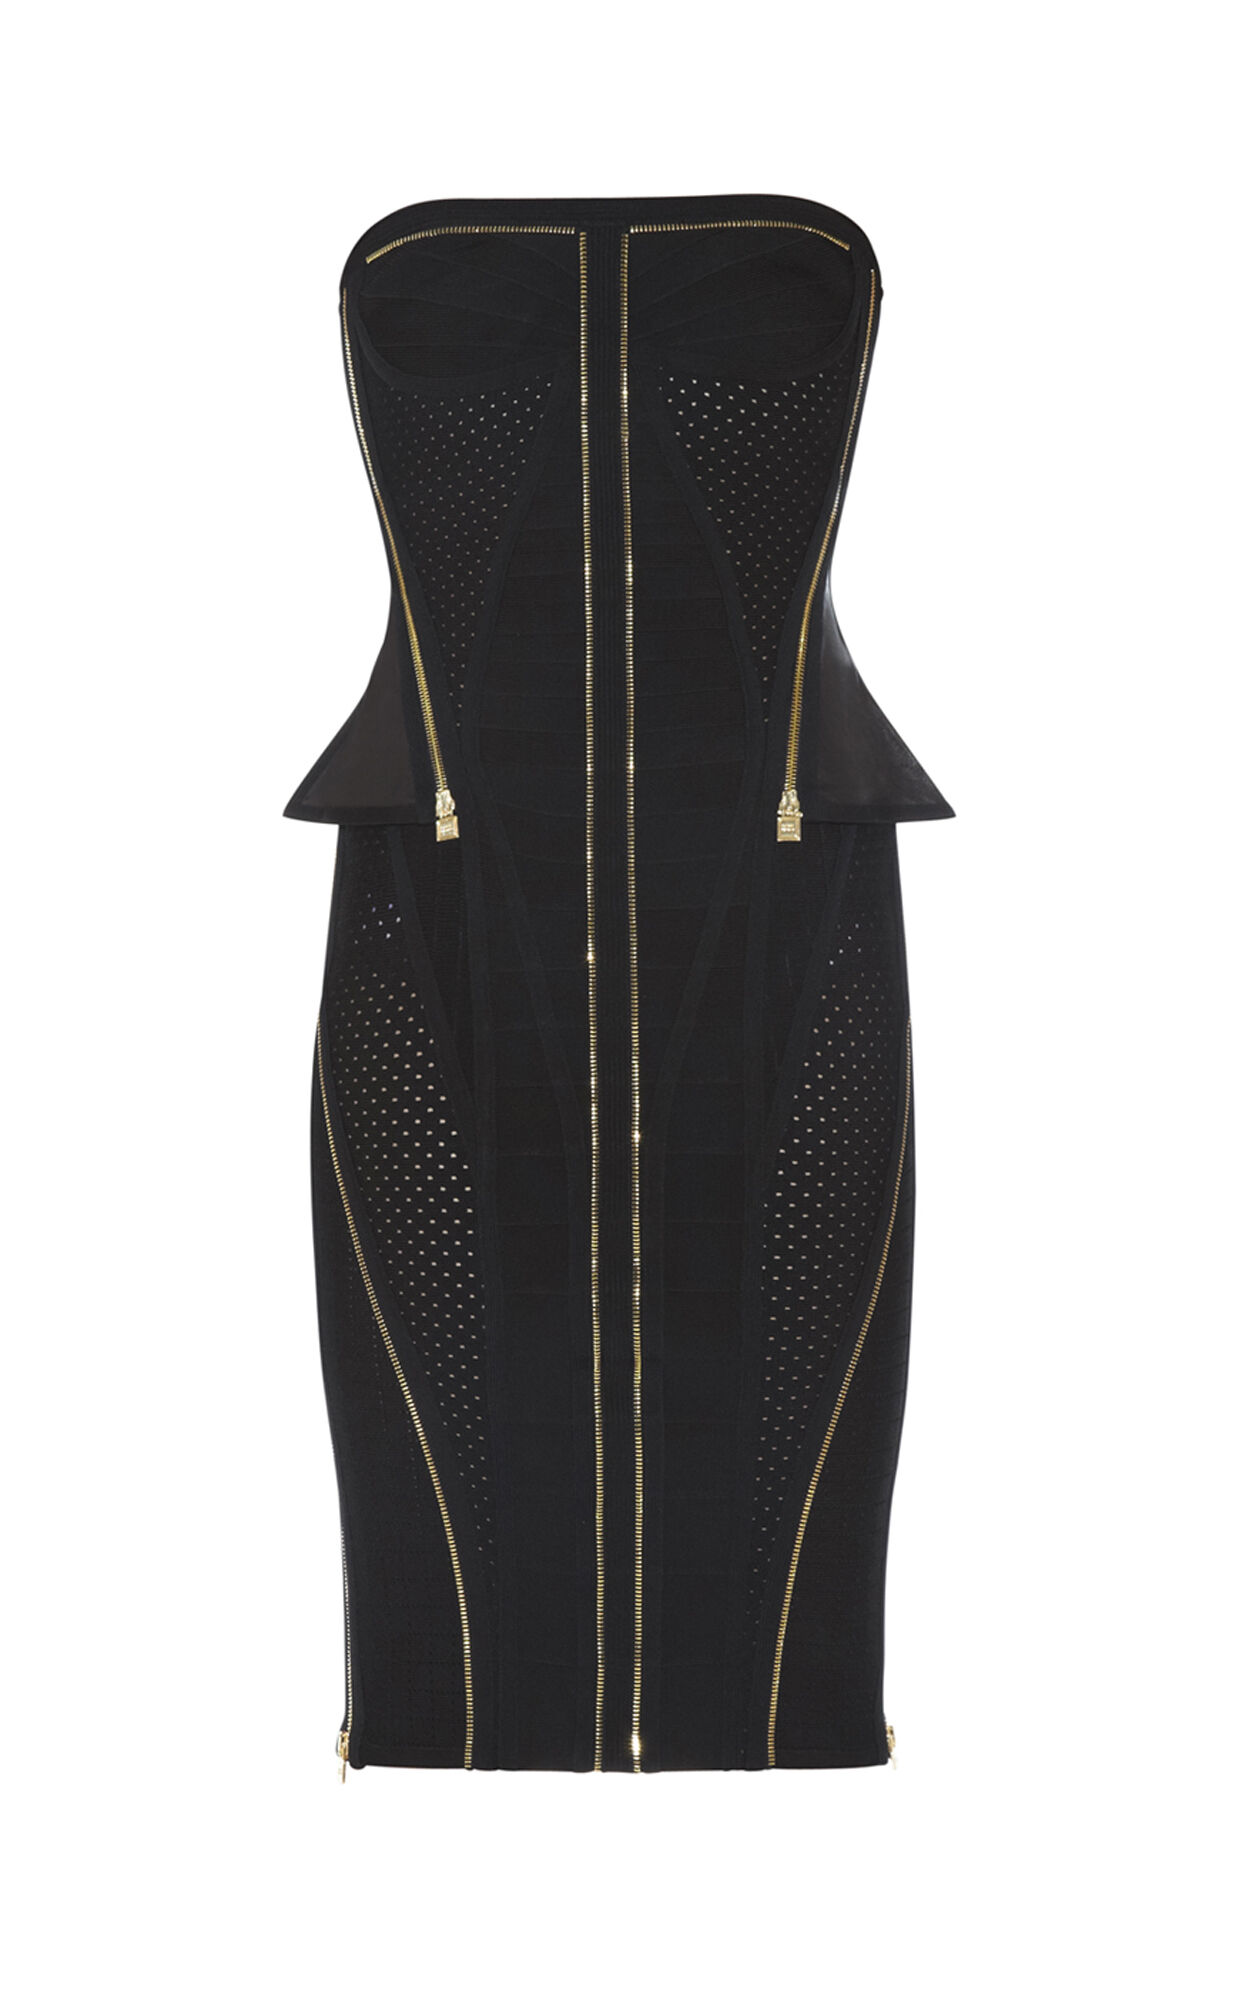 Xandra Zipper-Detailed Dress